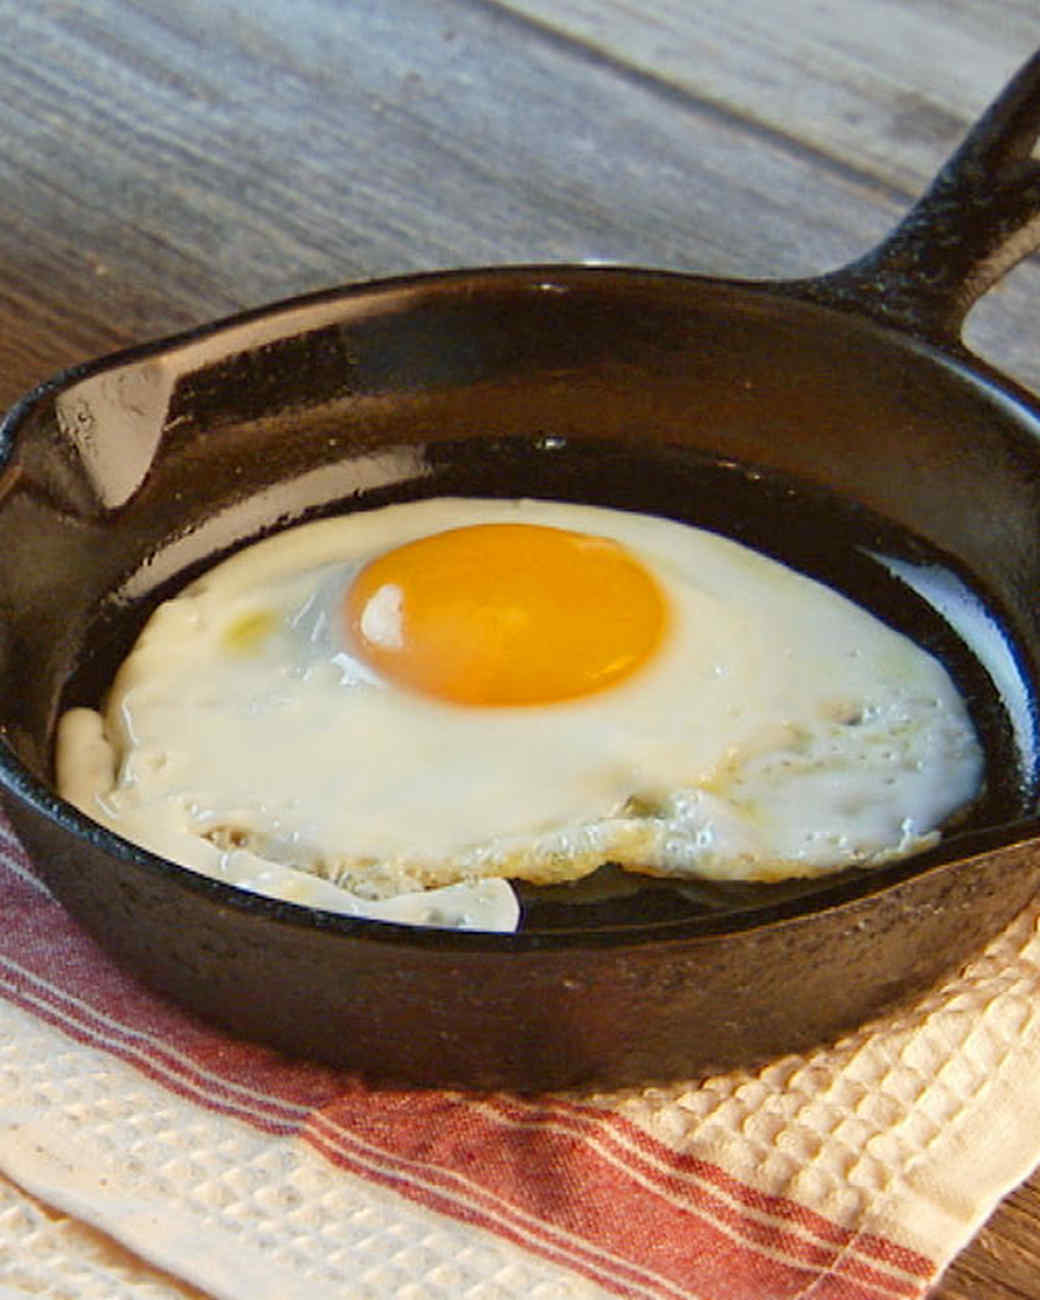 mh_1059_fried_egg.jpg